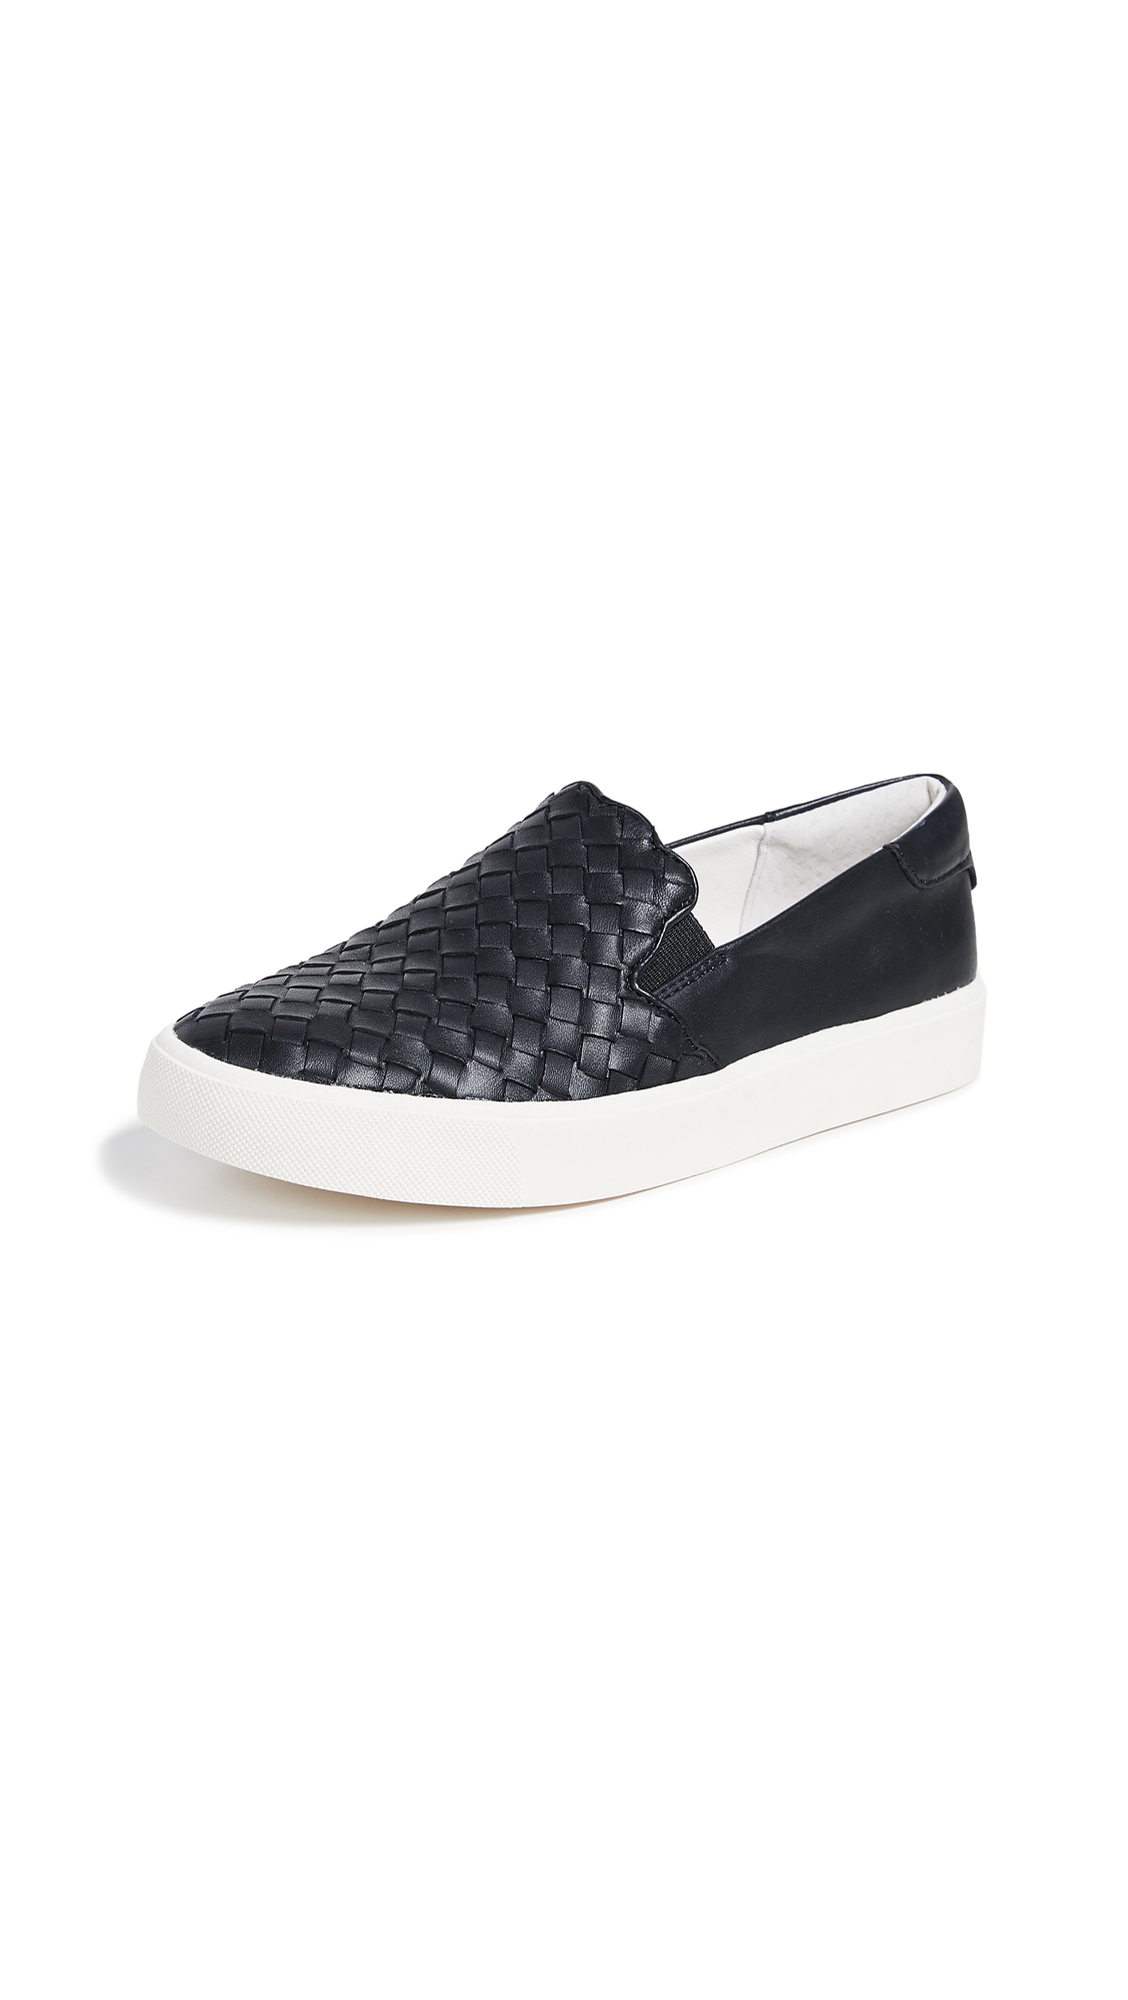 Sam Edelman Eda Slip On Sneakers - Black